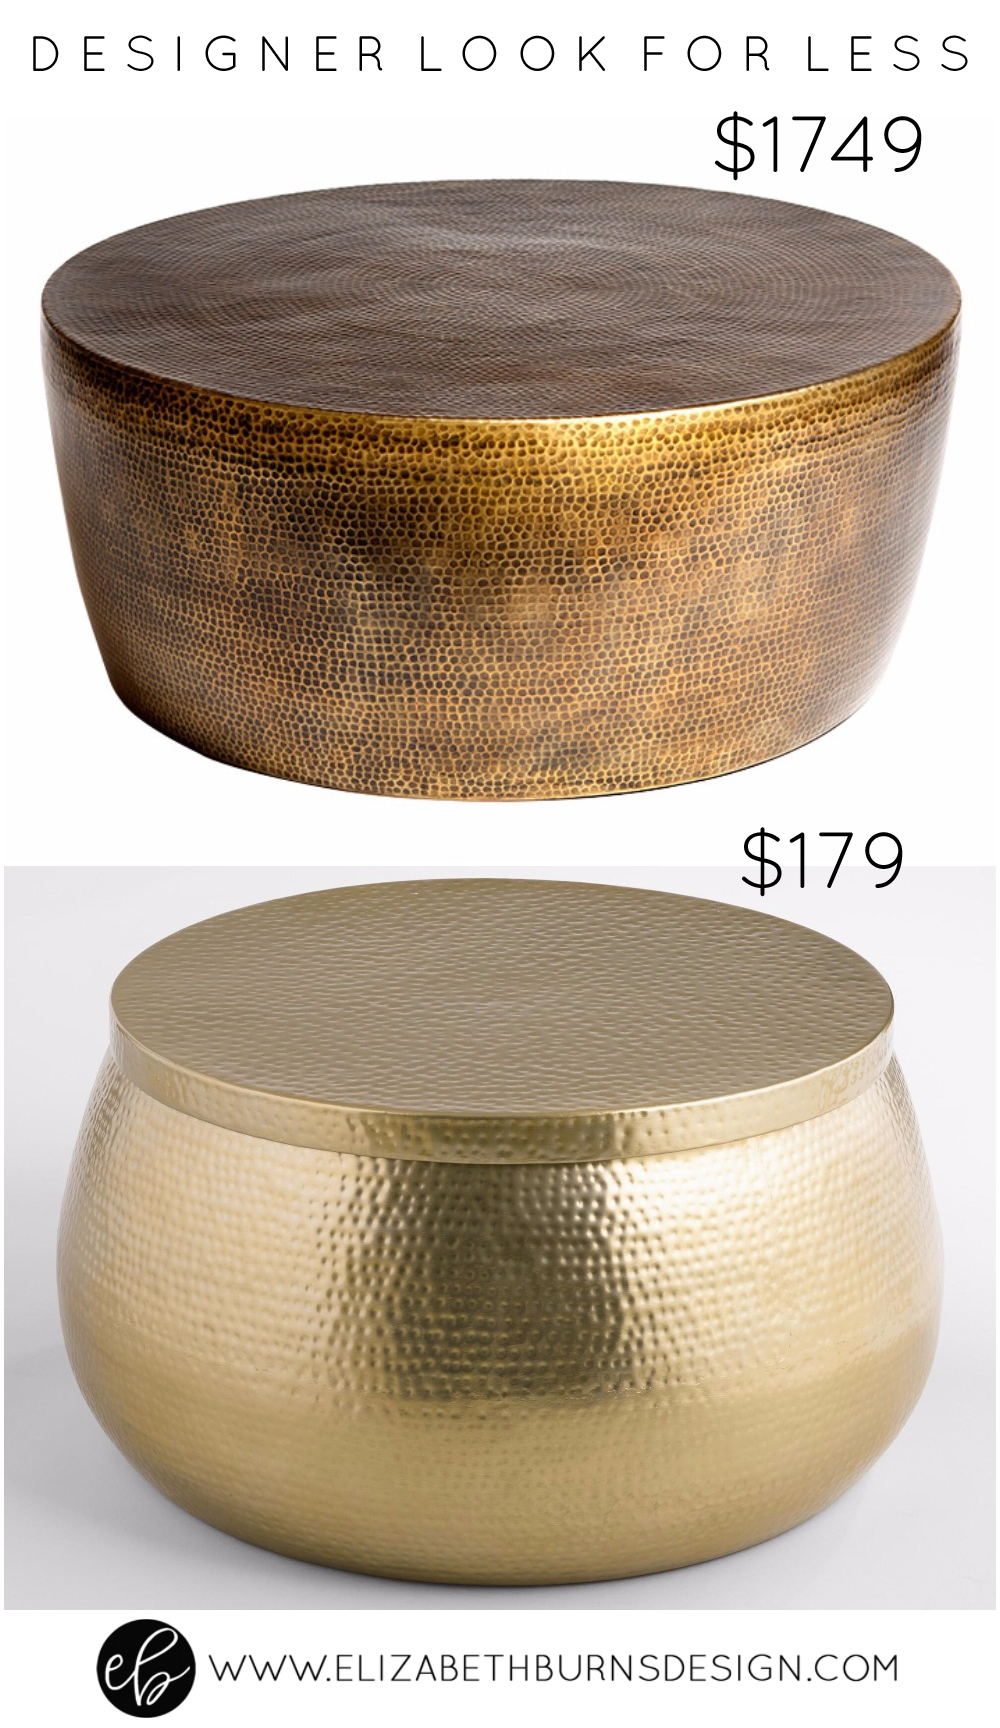 Designer Look For Less Gold Hammered Coffee Table Elizabeth Burns Design Raleigh Nc Interior